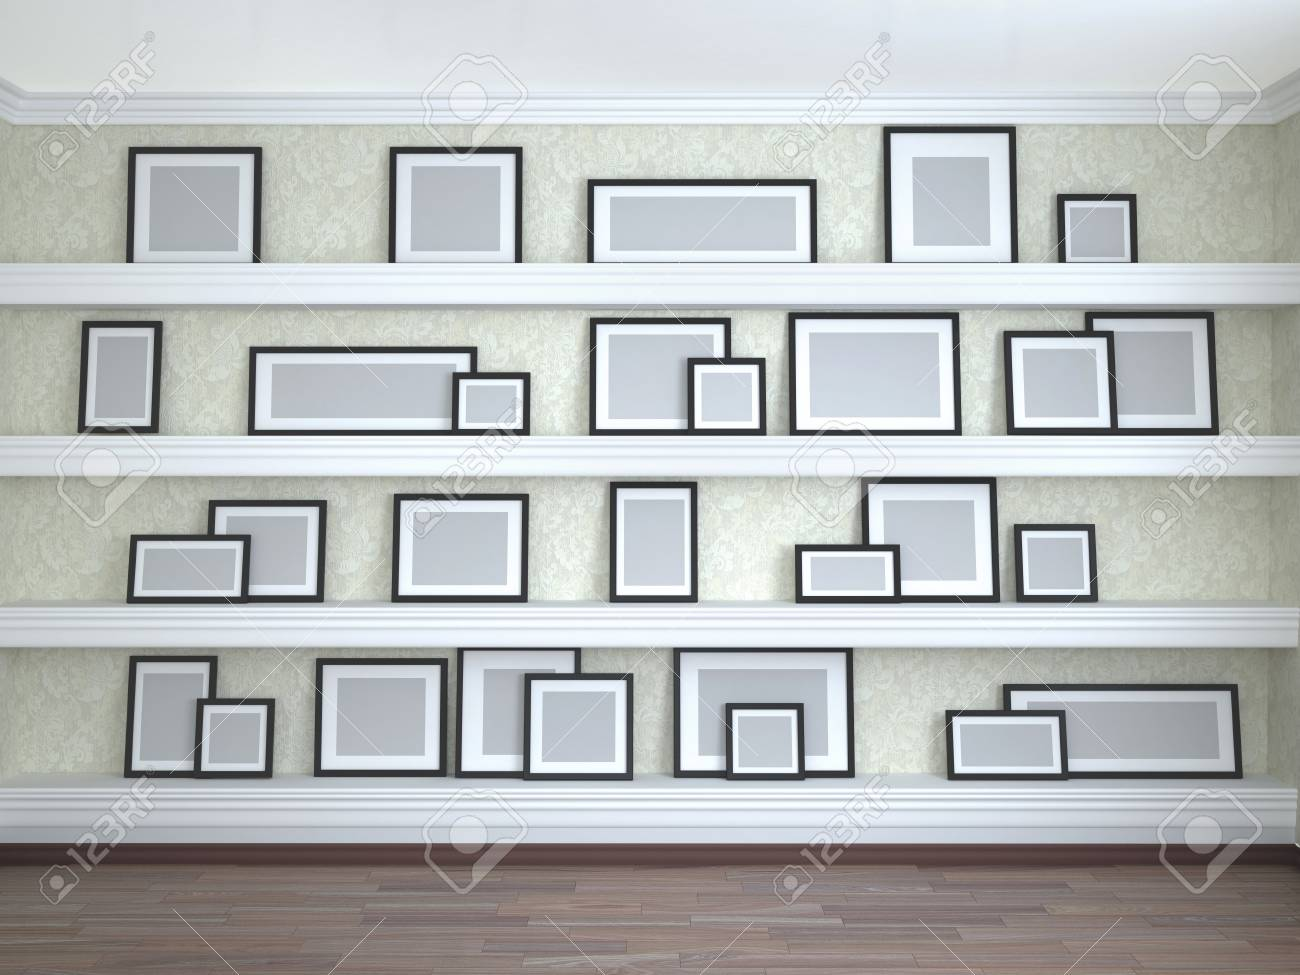 Different Frame Sizes On The Shelves. 3d Illustration Stock Photo ...